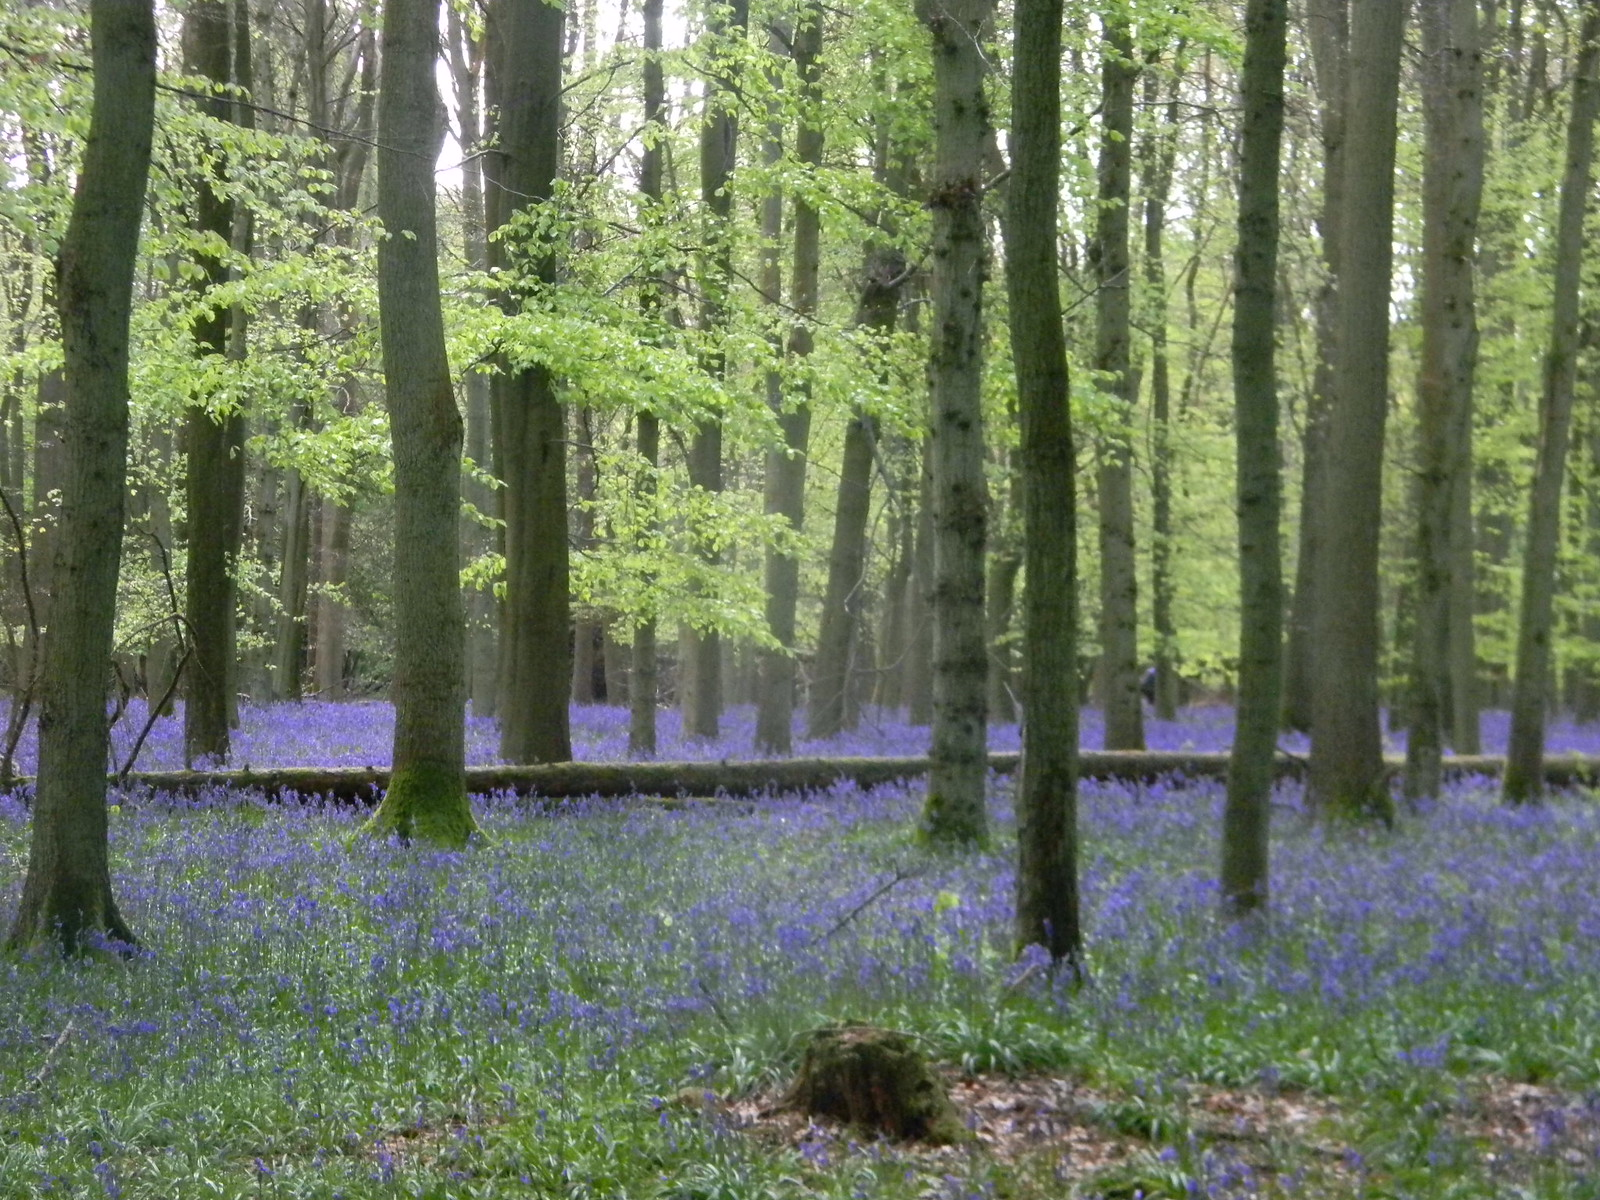 More bluebells Tring to Berkhamsted